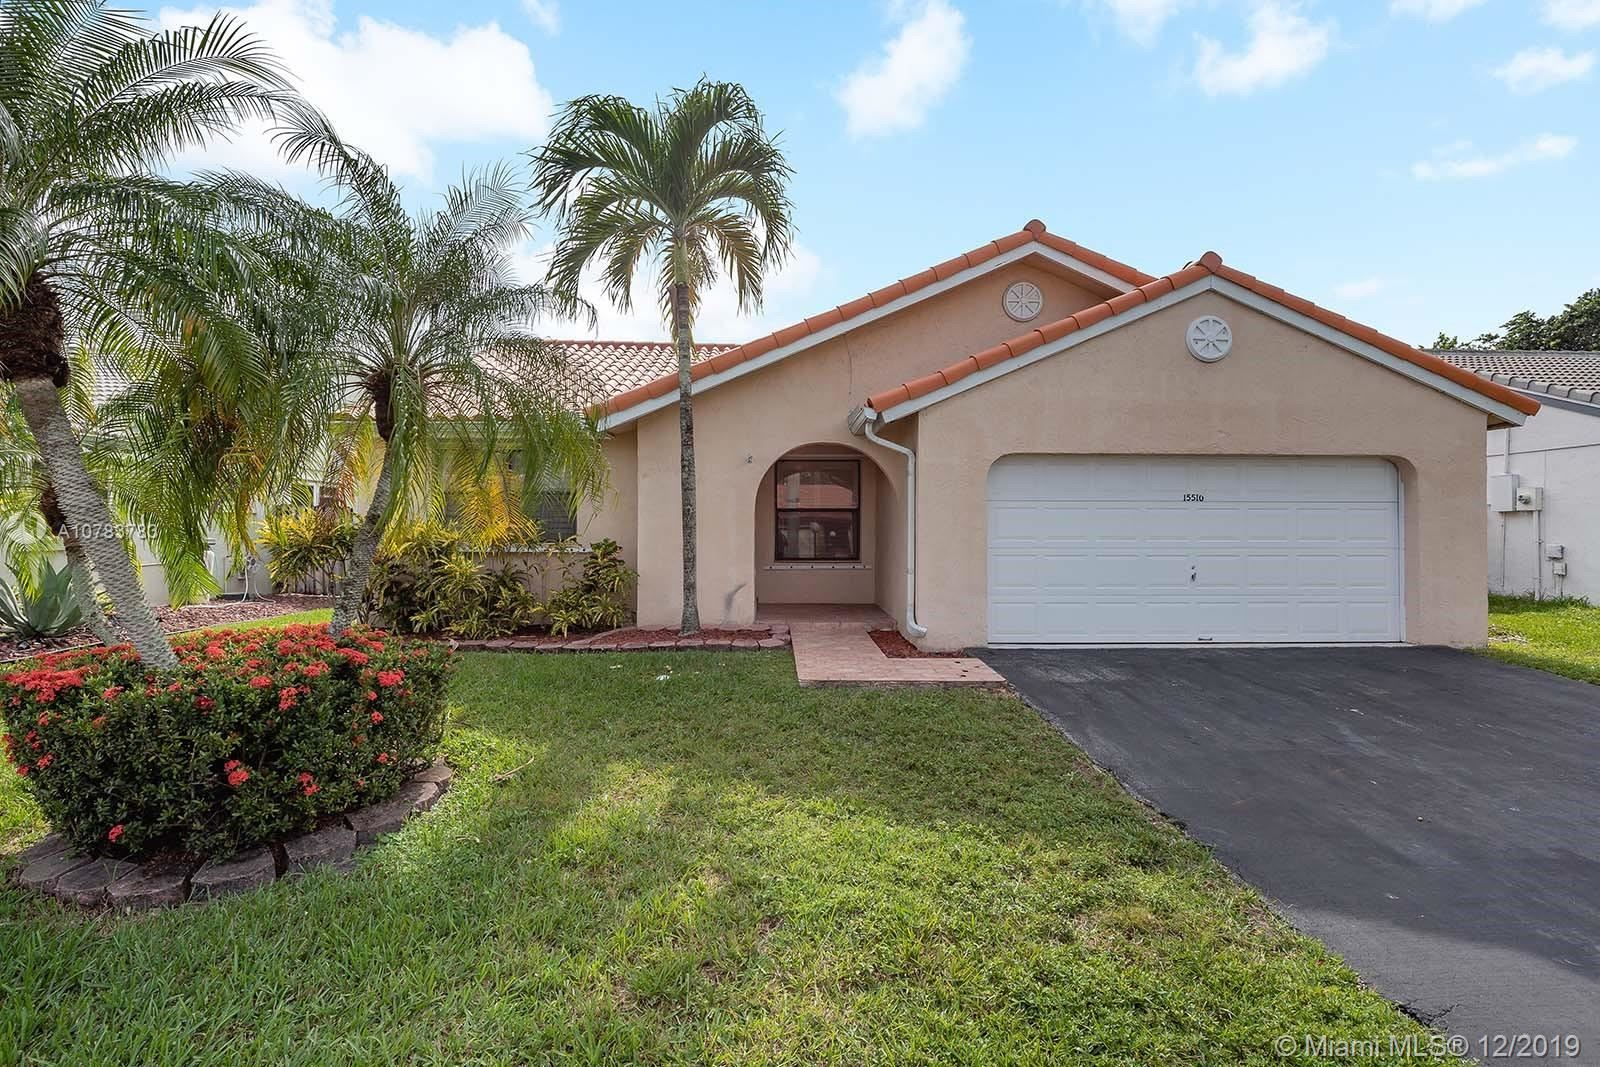 Photo of 15510 Gauntlet Hall Mnr, Davie, FL 33331 (MLS # A10783783)